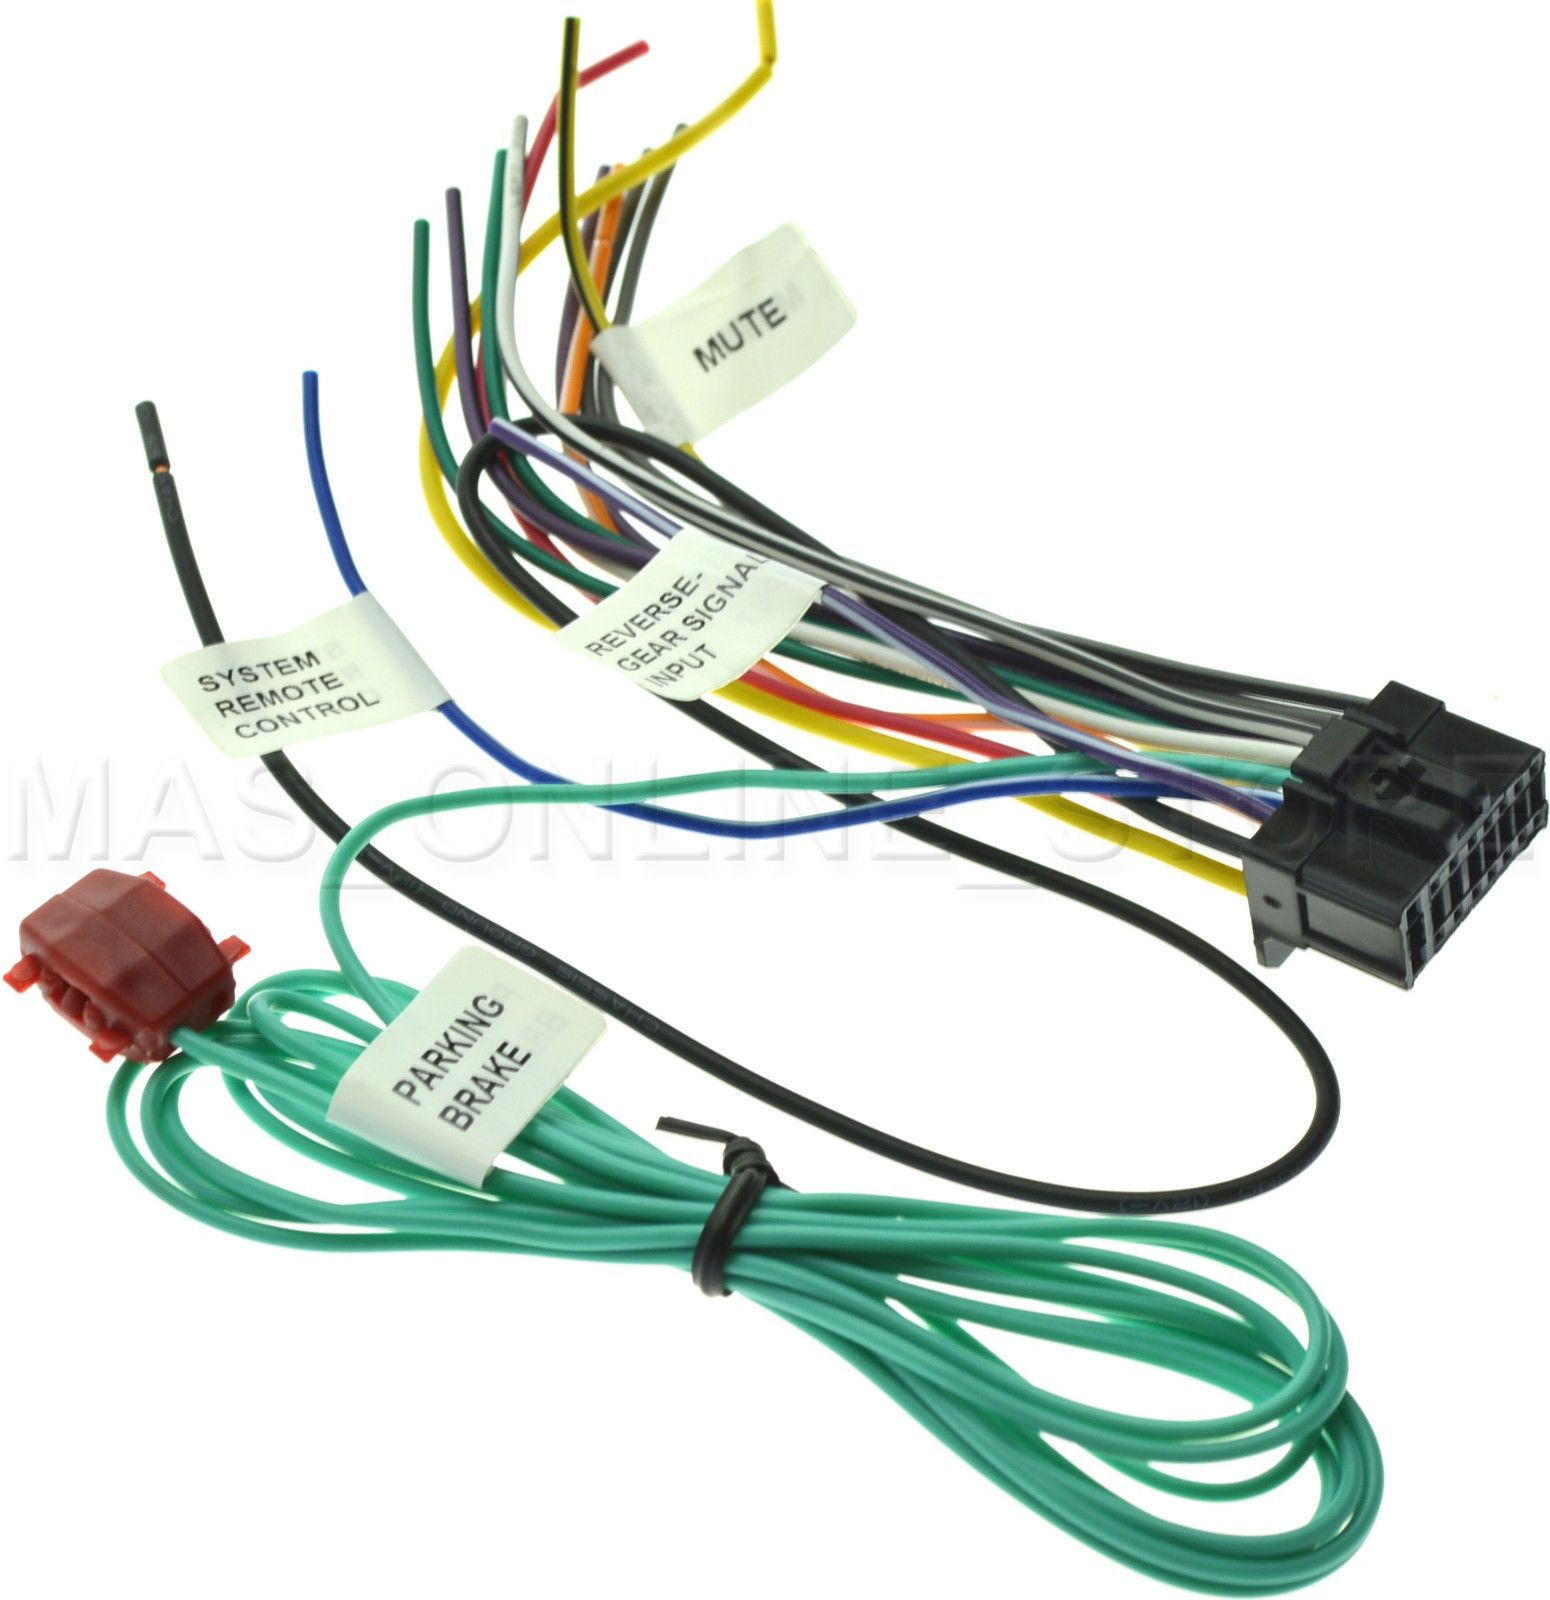 hight resolution of  12 91 wire harness for pioneer avh p8400bh avhp8400bh pay today ships today ebay